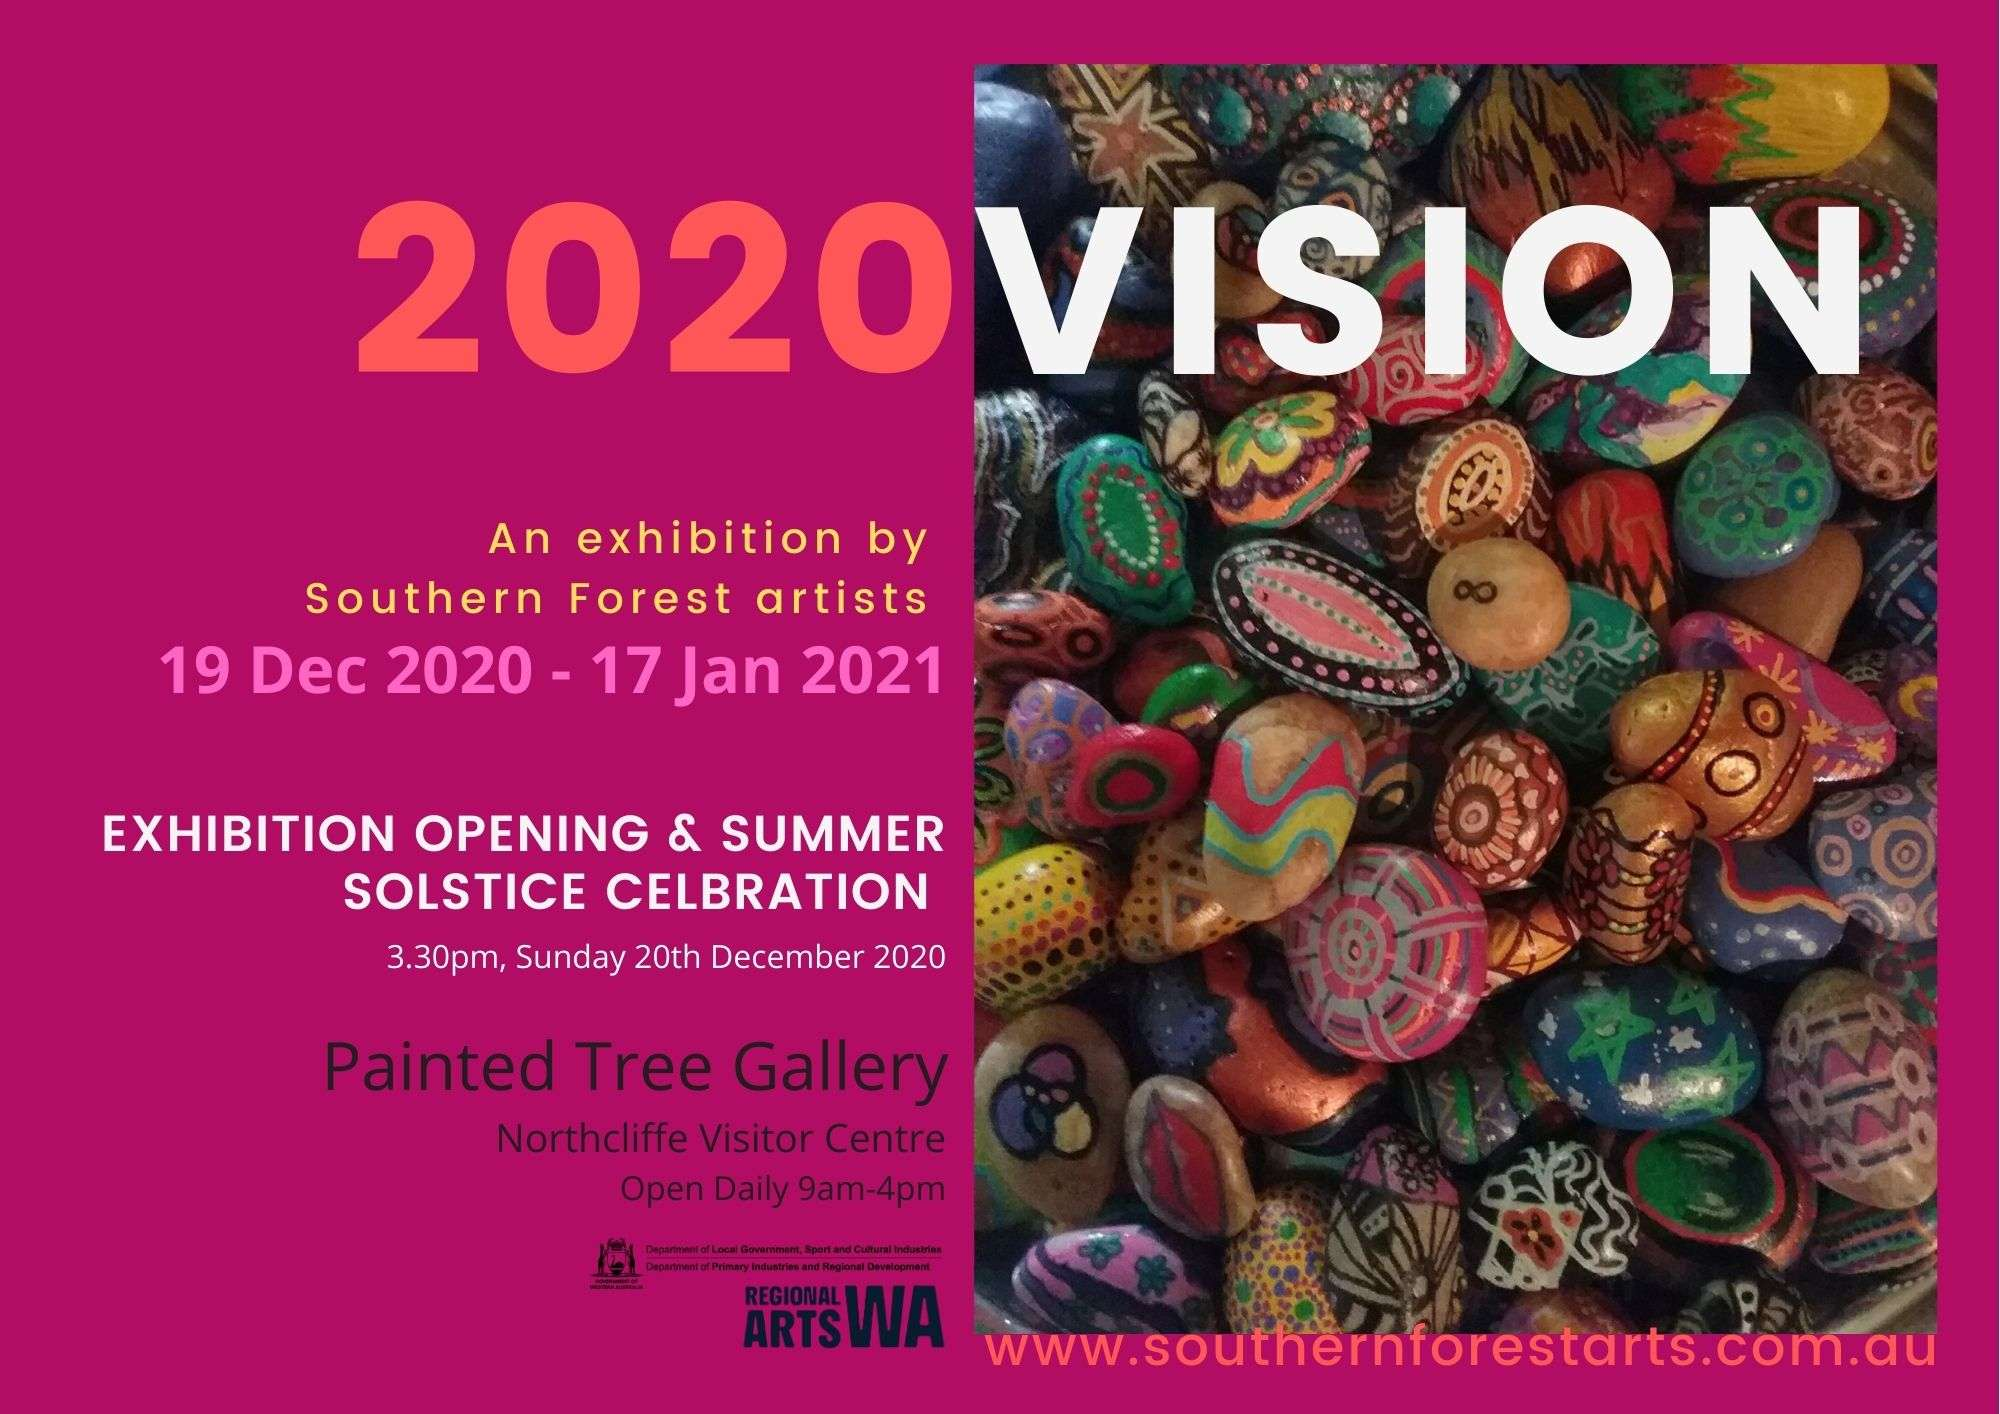 2020VISION poster for the painted Tree gallery December 2020 - January 2021 curated by Rae Starr featuring artists from the Southern Forests region